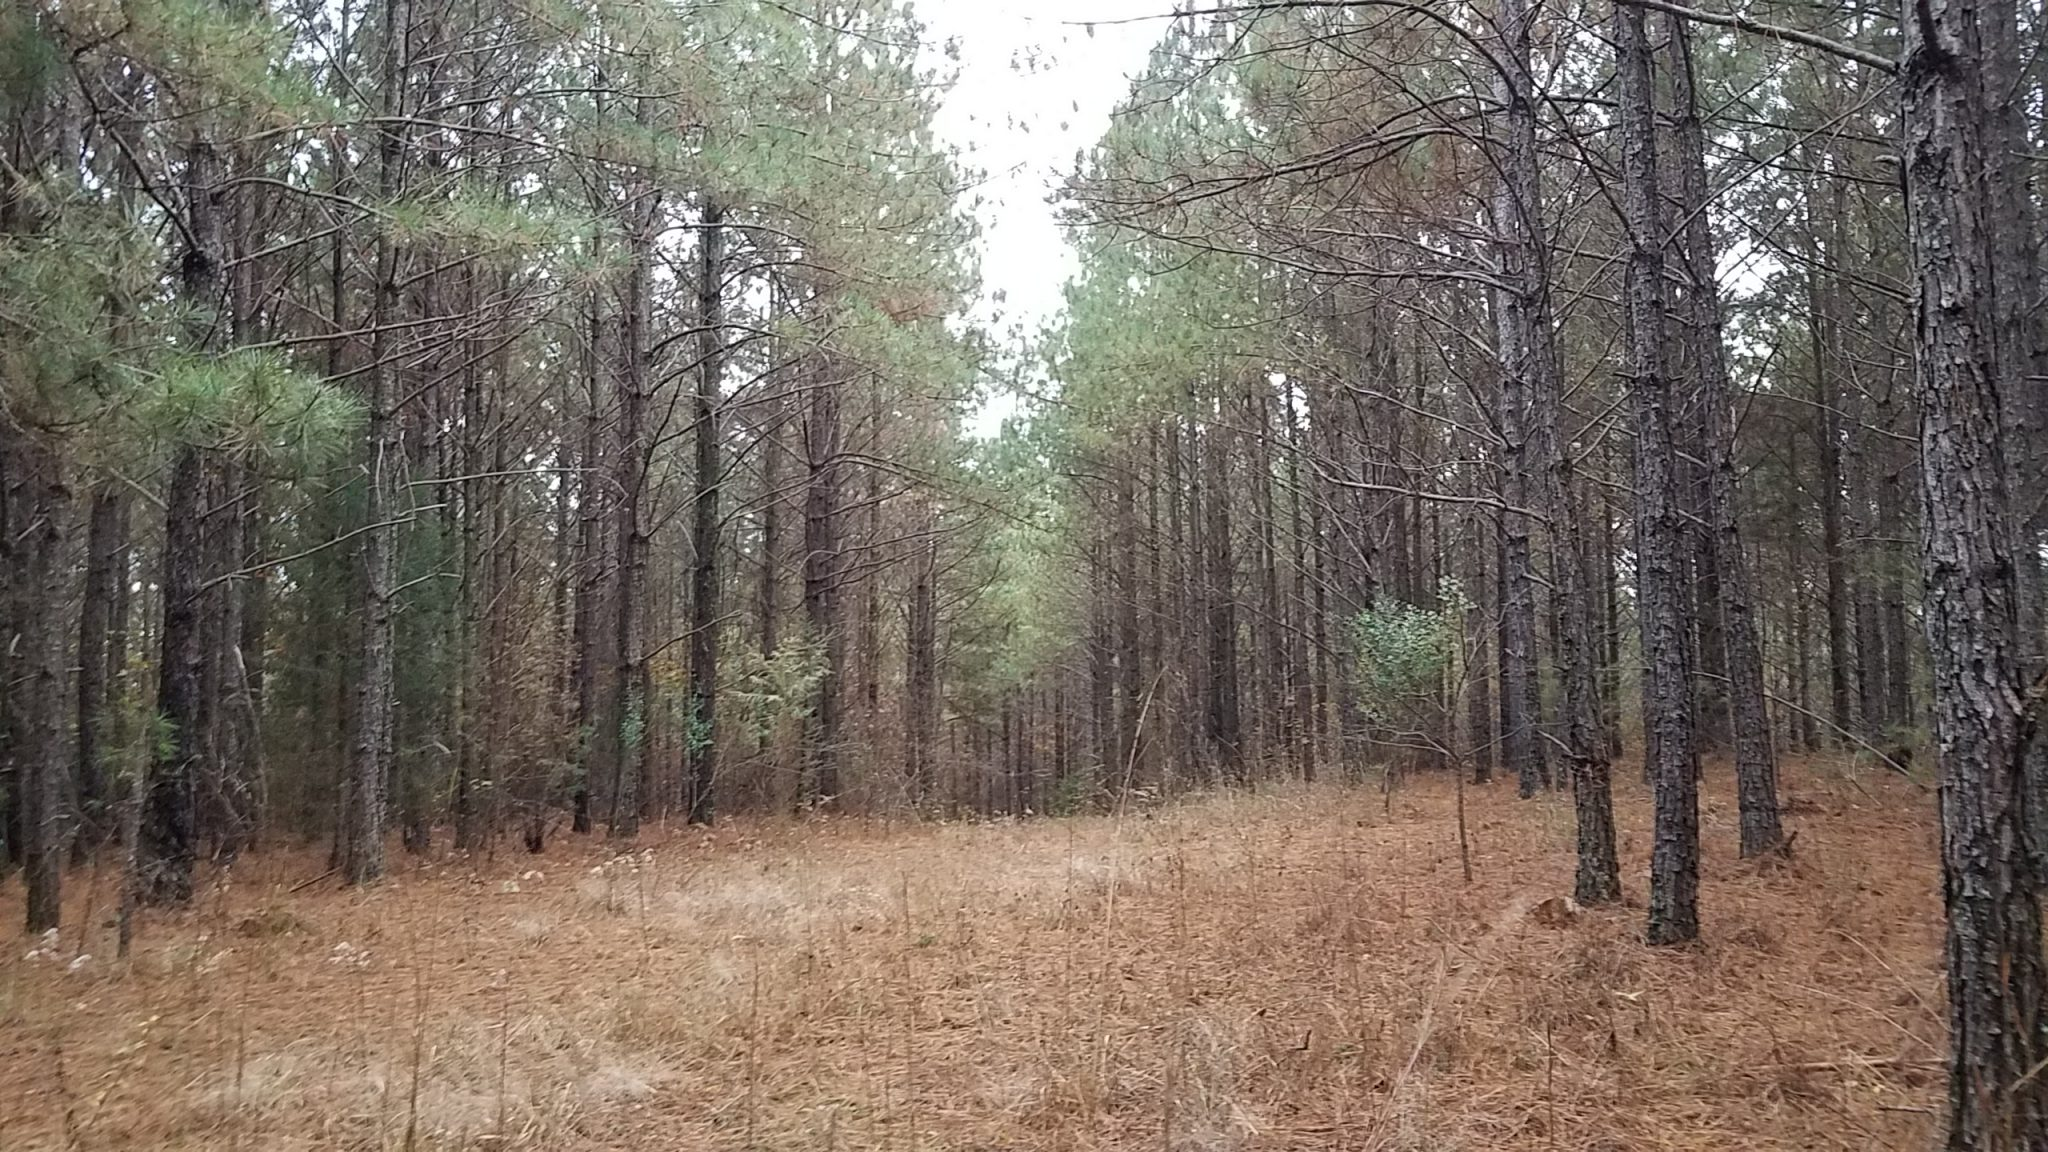 PINE PLANTATION IN NORTHERN CLAY COUNTY